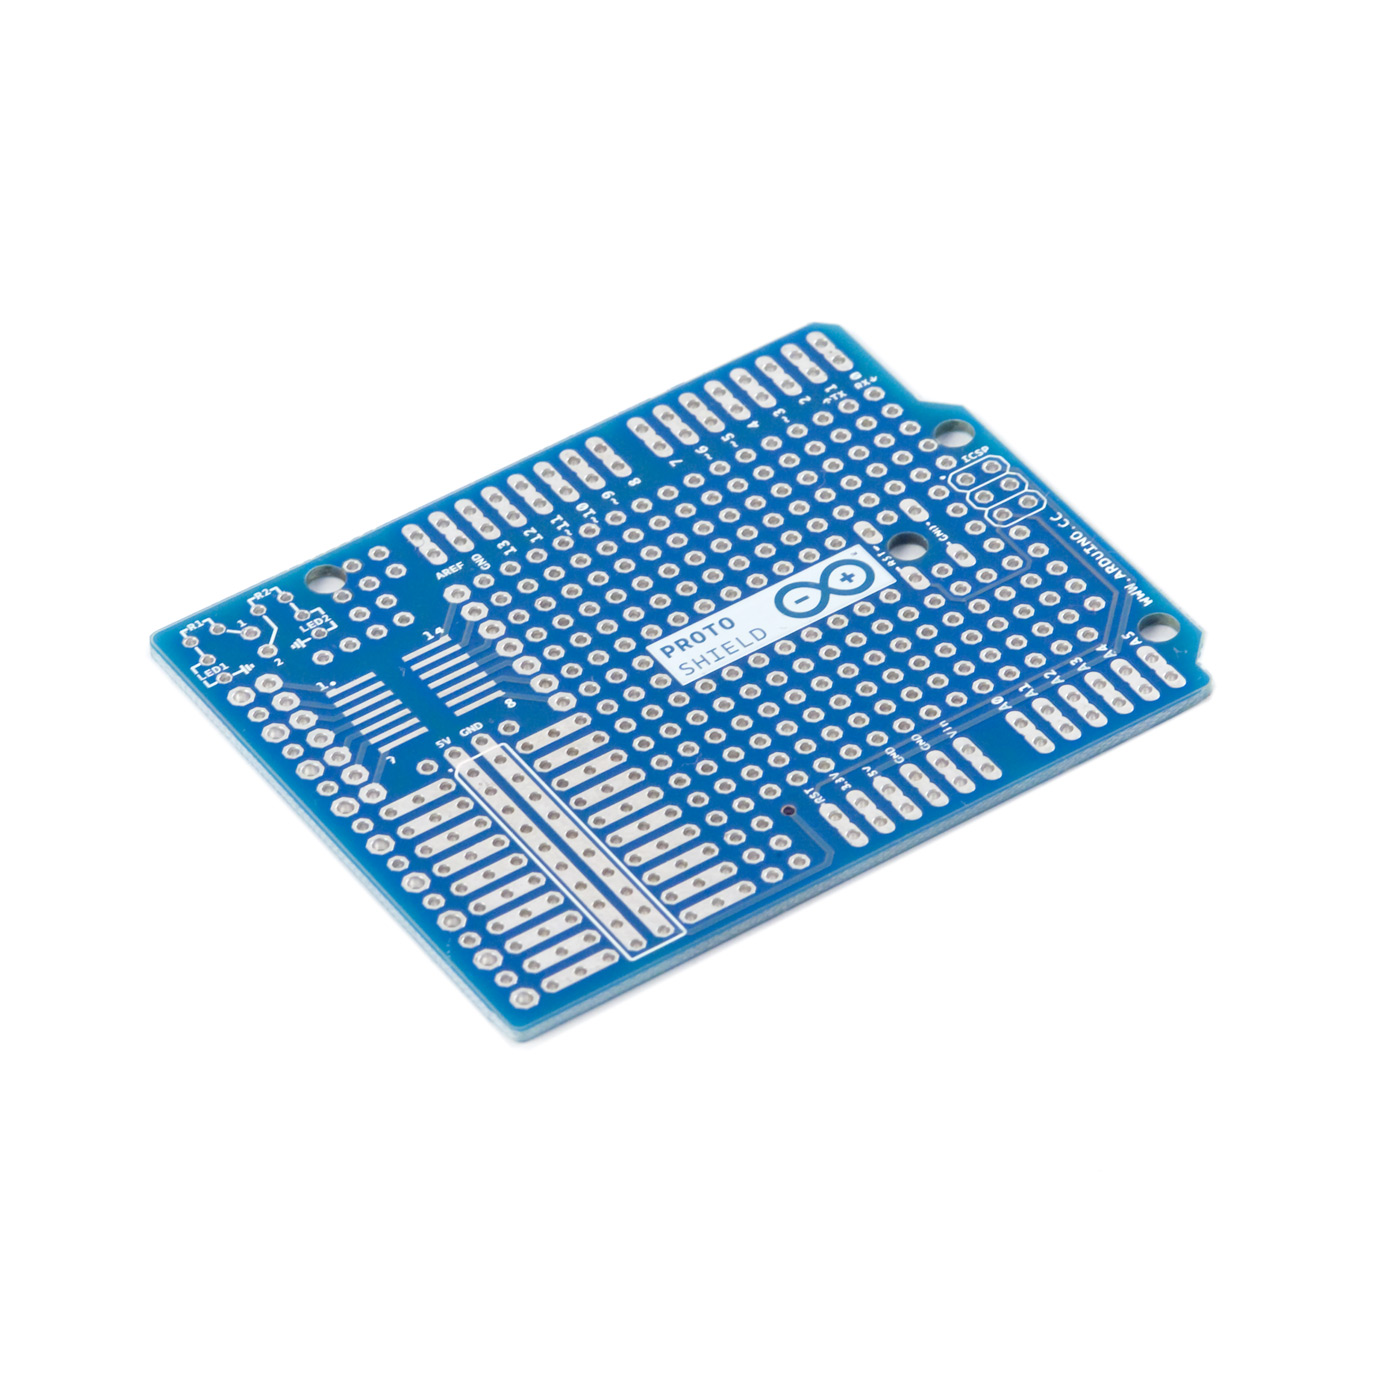 Wave Shield Kit for Arduino - RobotShop